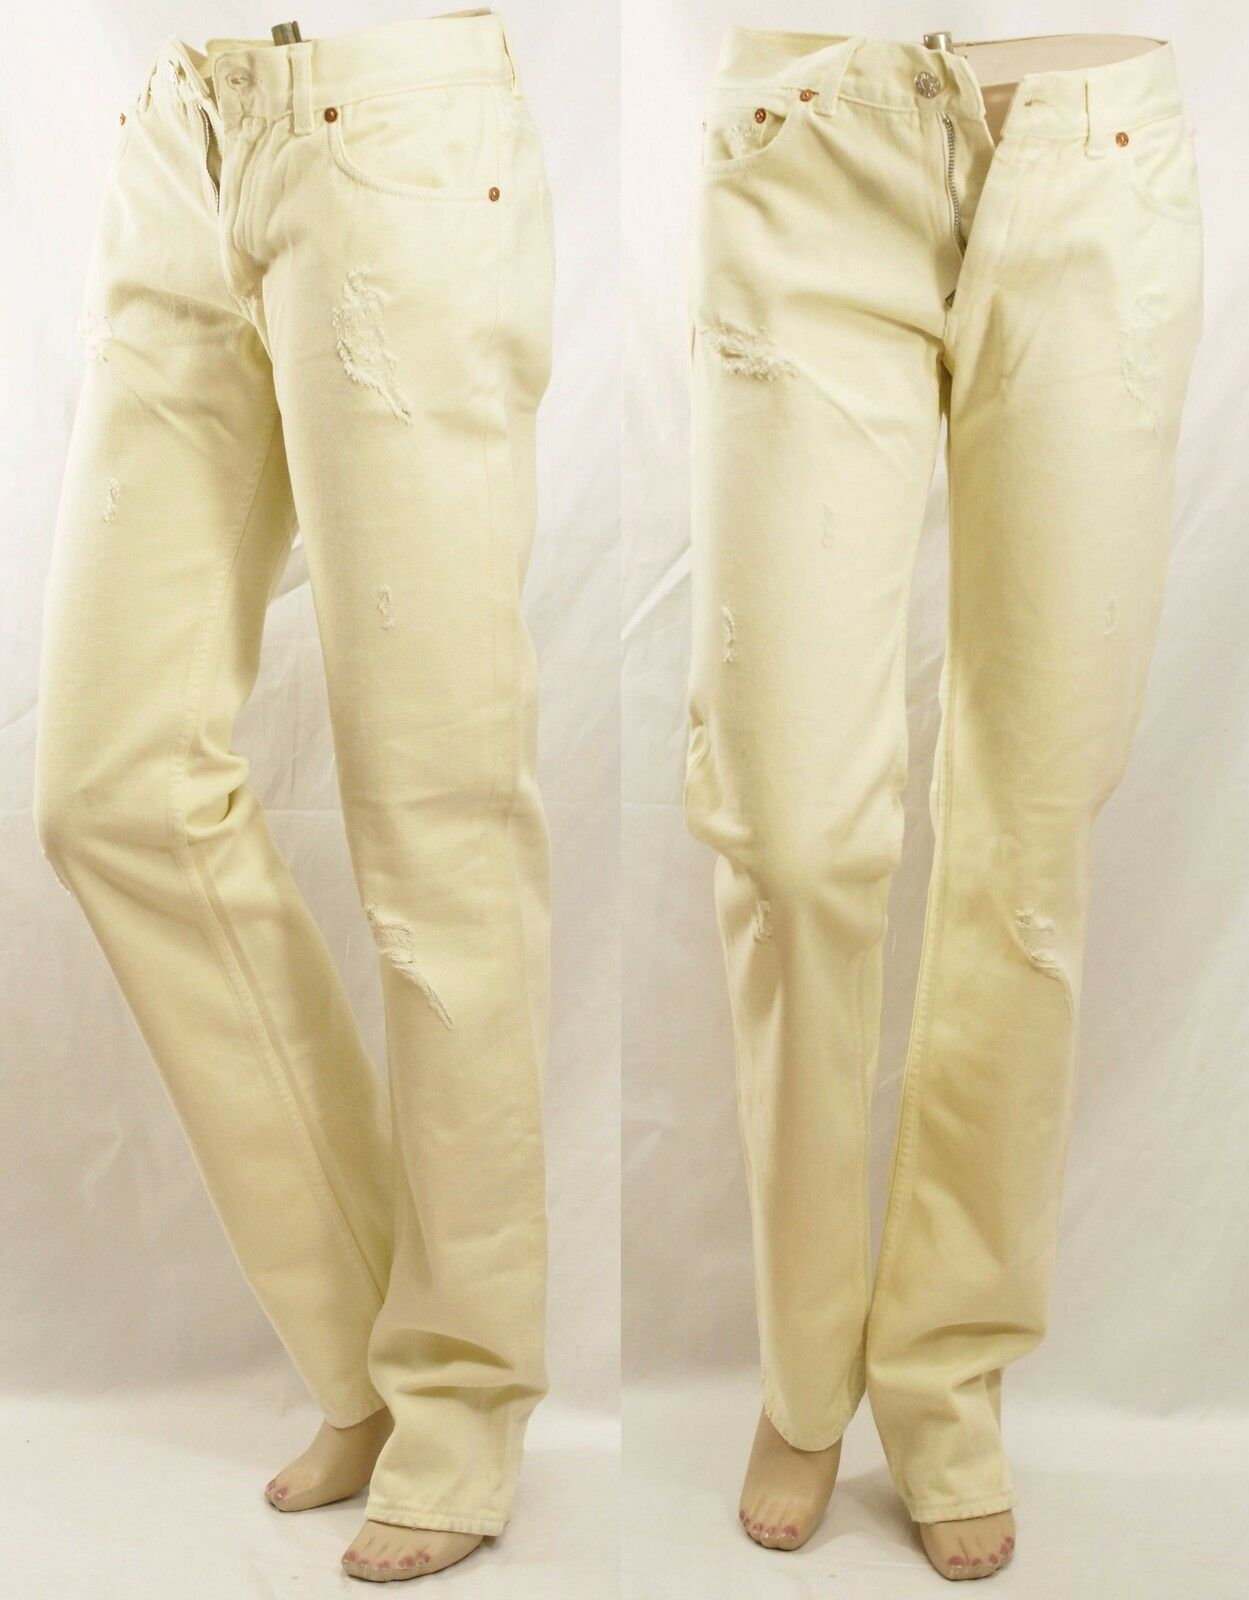 ACNE HER WHITE TRASHED 25 26 27 28 29 30 Destroyed Jeans Women Holiday Gift